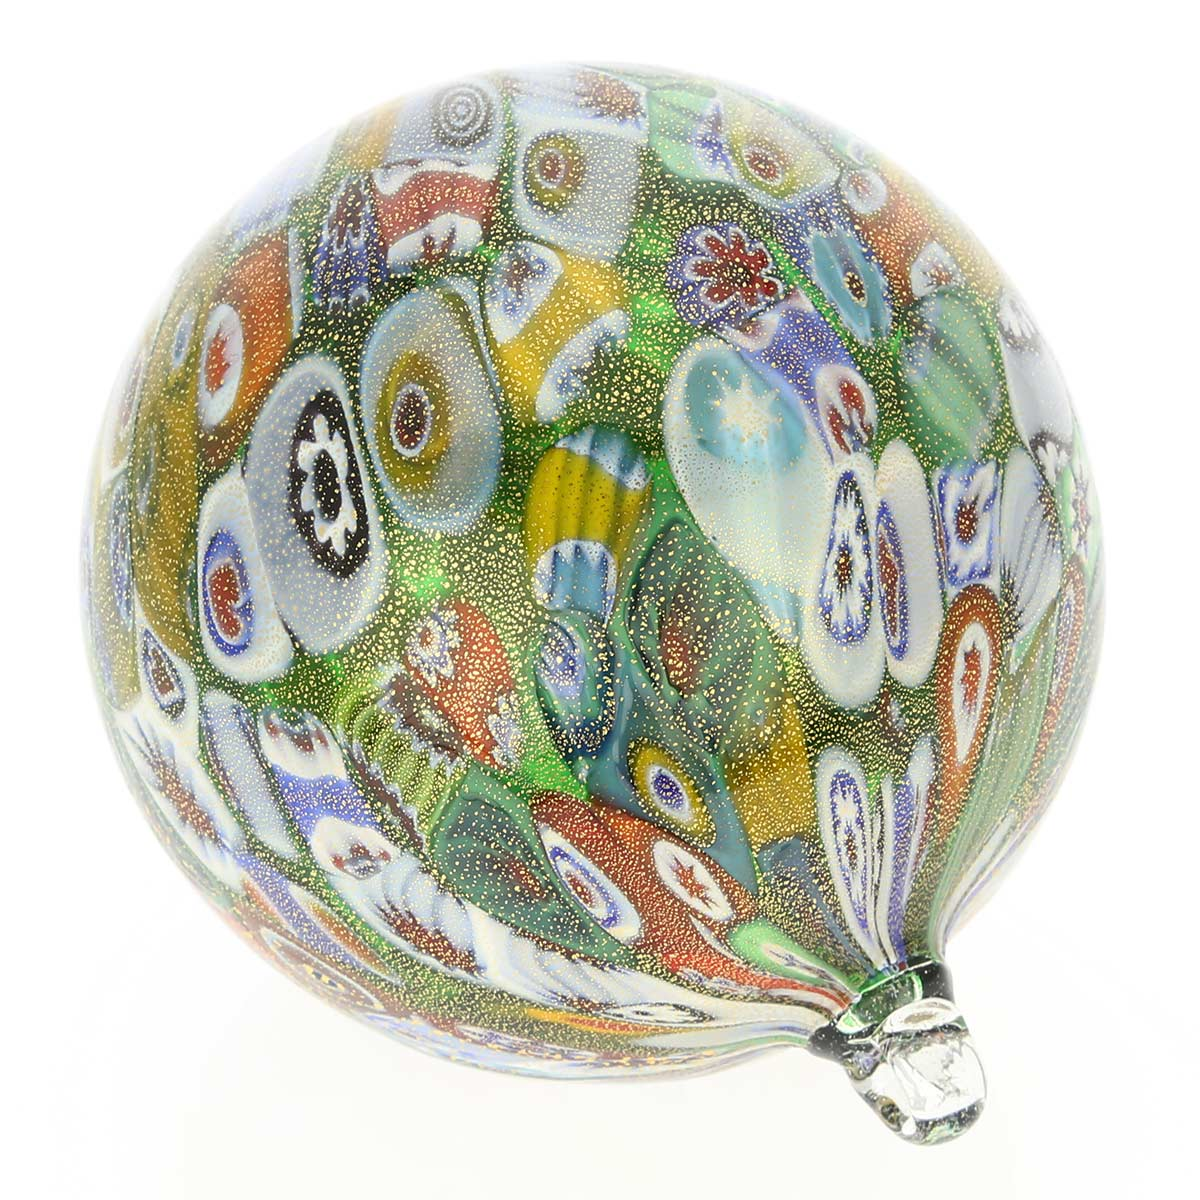 Murano Glass Christmas Ornament - Green and Gold Millefiori